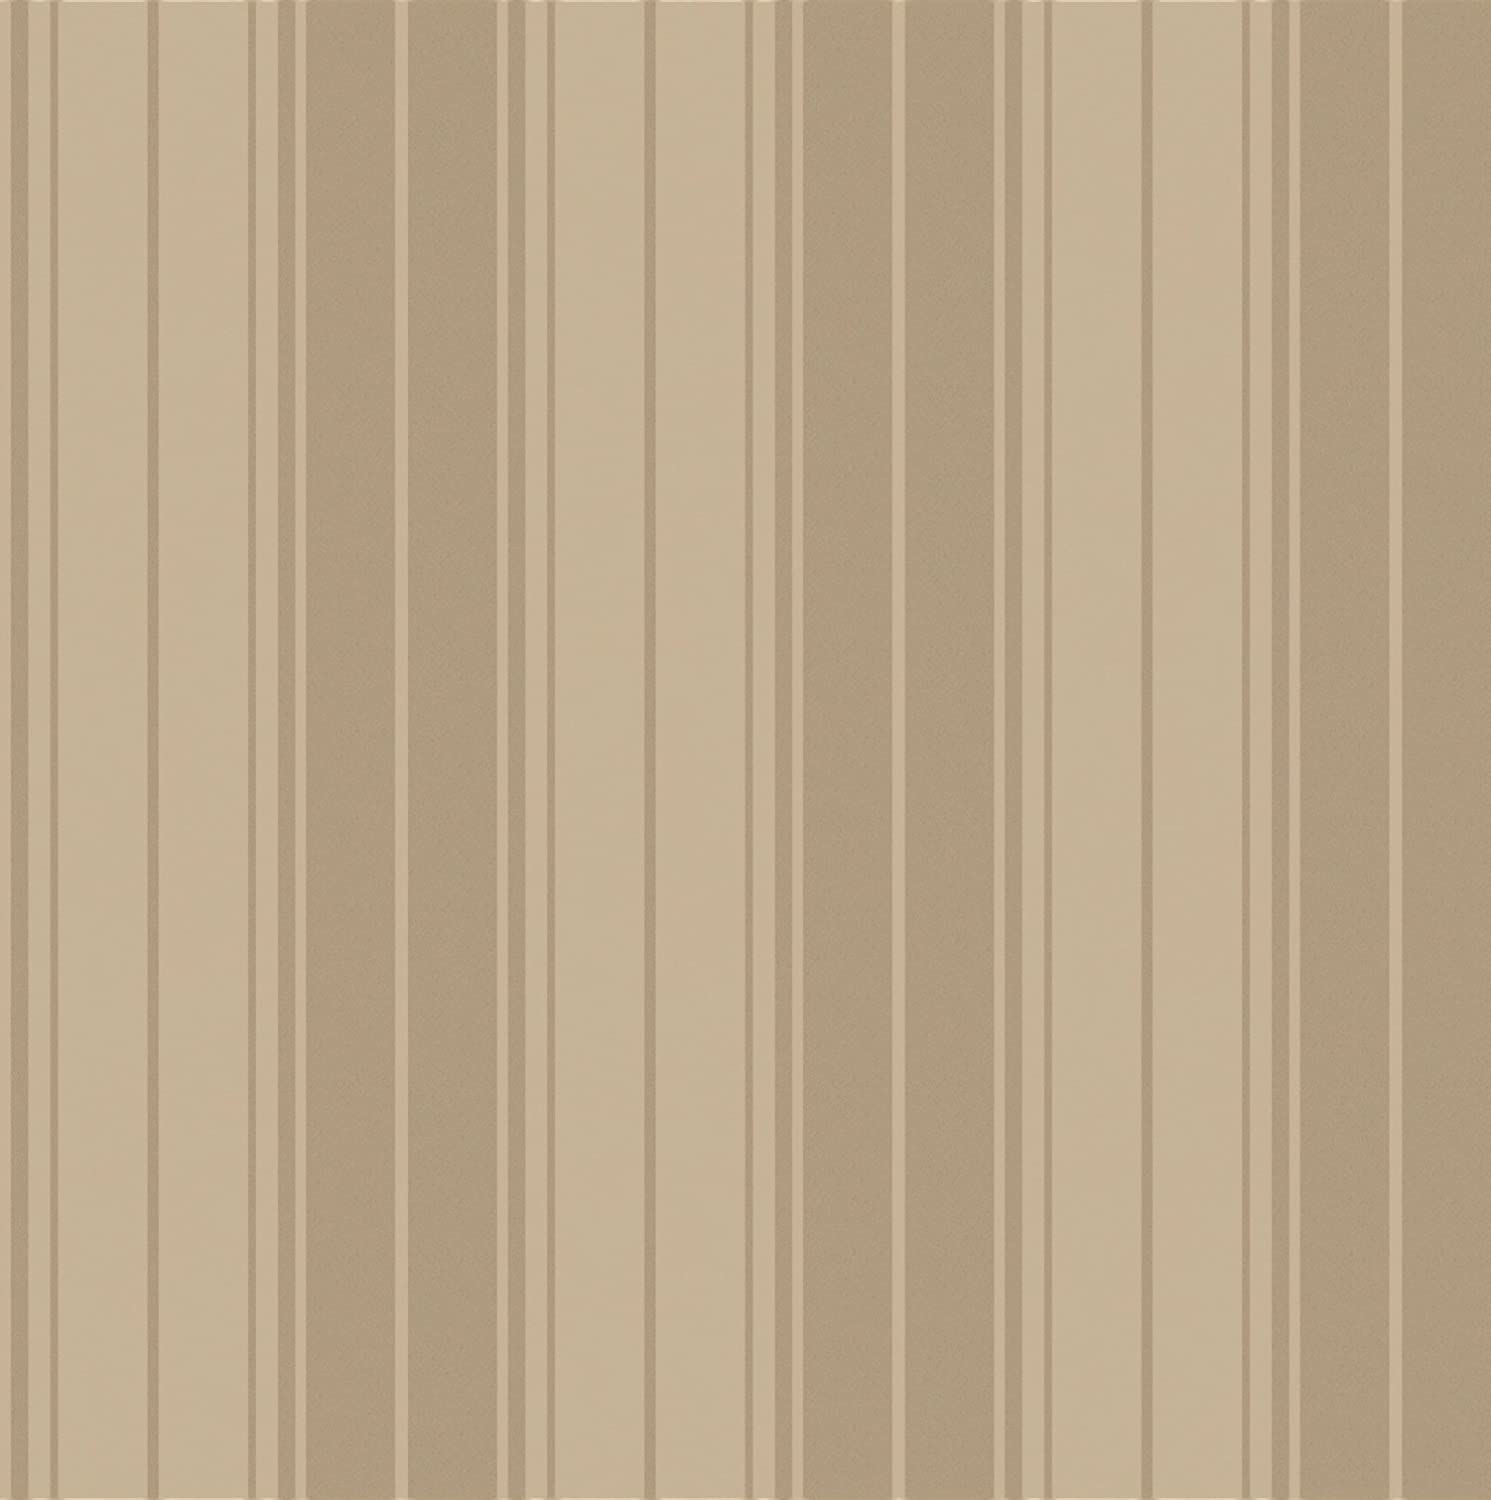 Holden Decor–Paper Collection Marcia Wallpaper 10.05x 0.53m